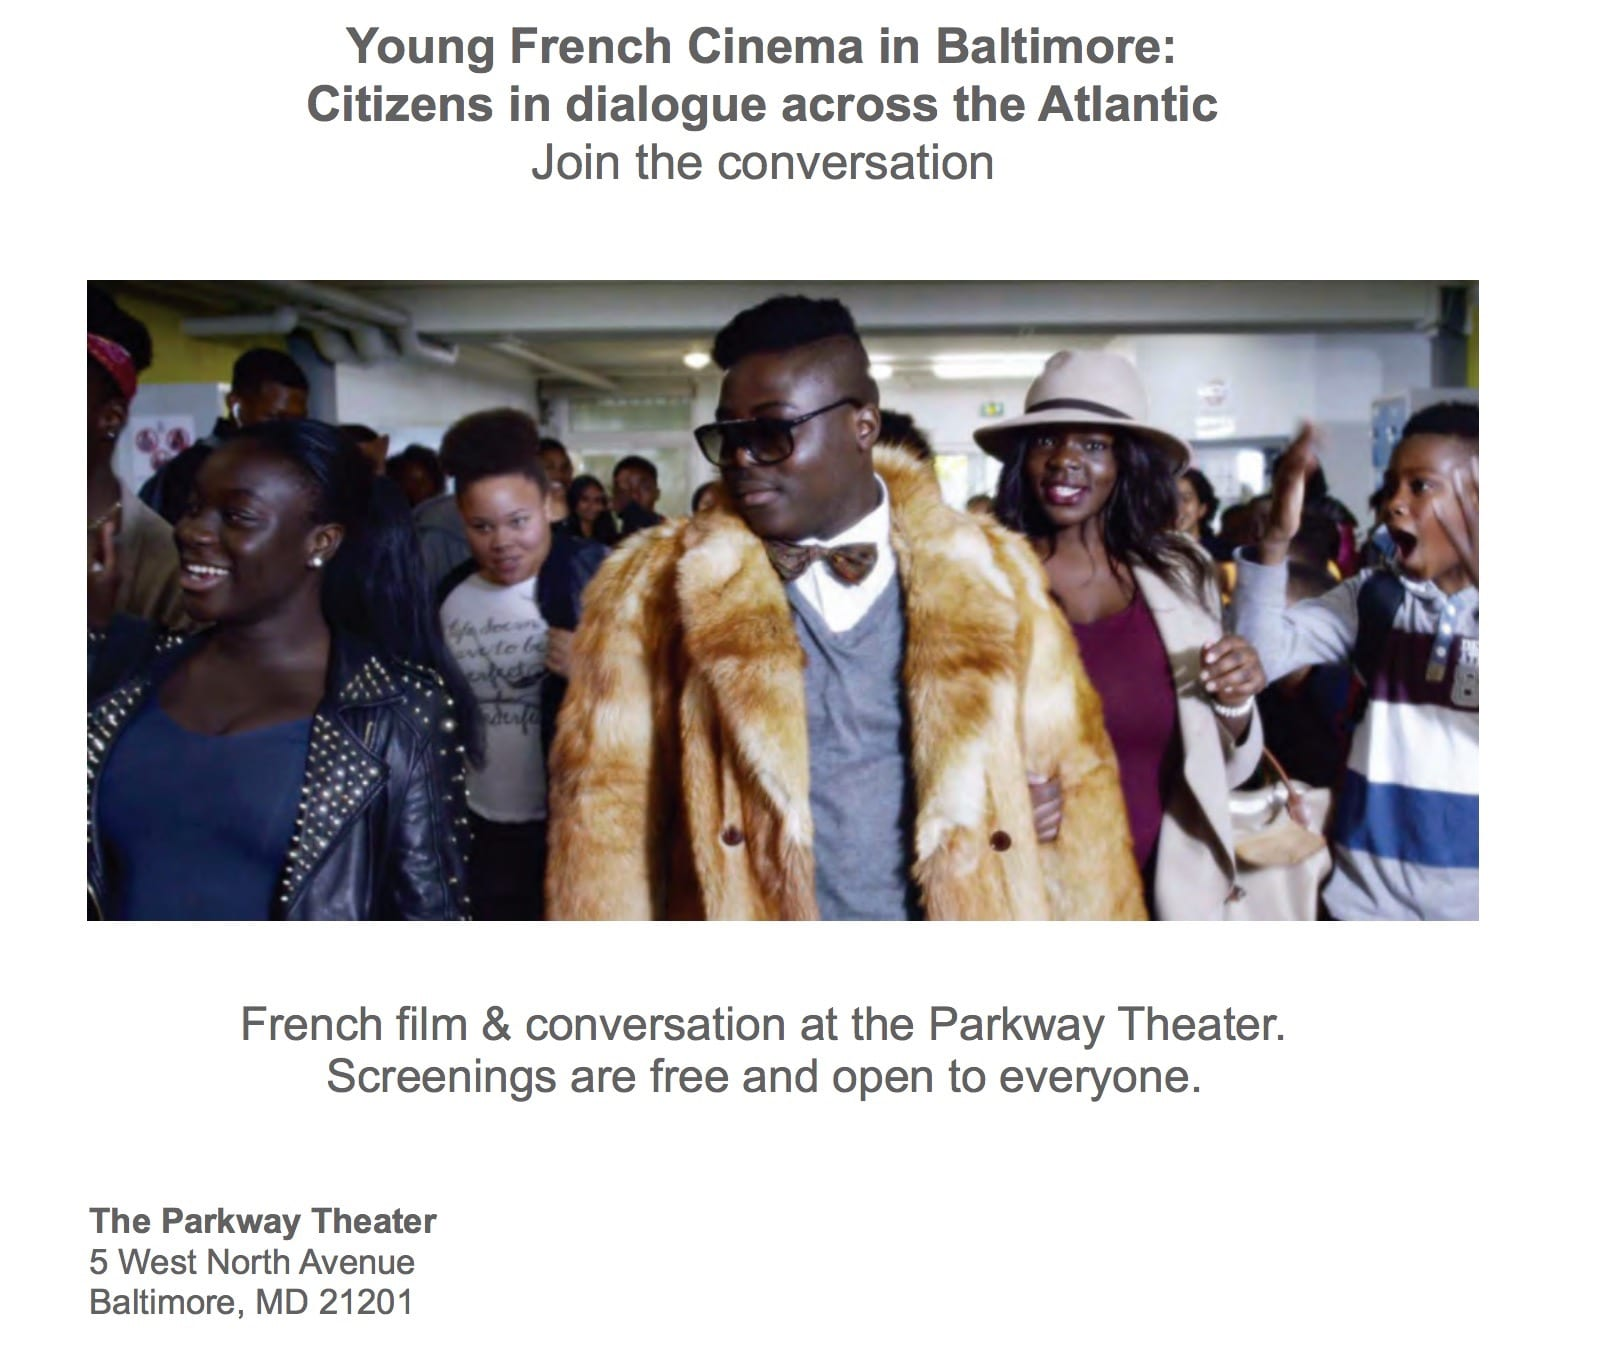 Young French Filmmakers at the Parkway Theatre